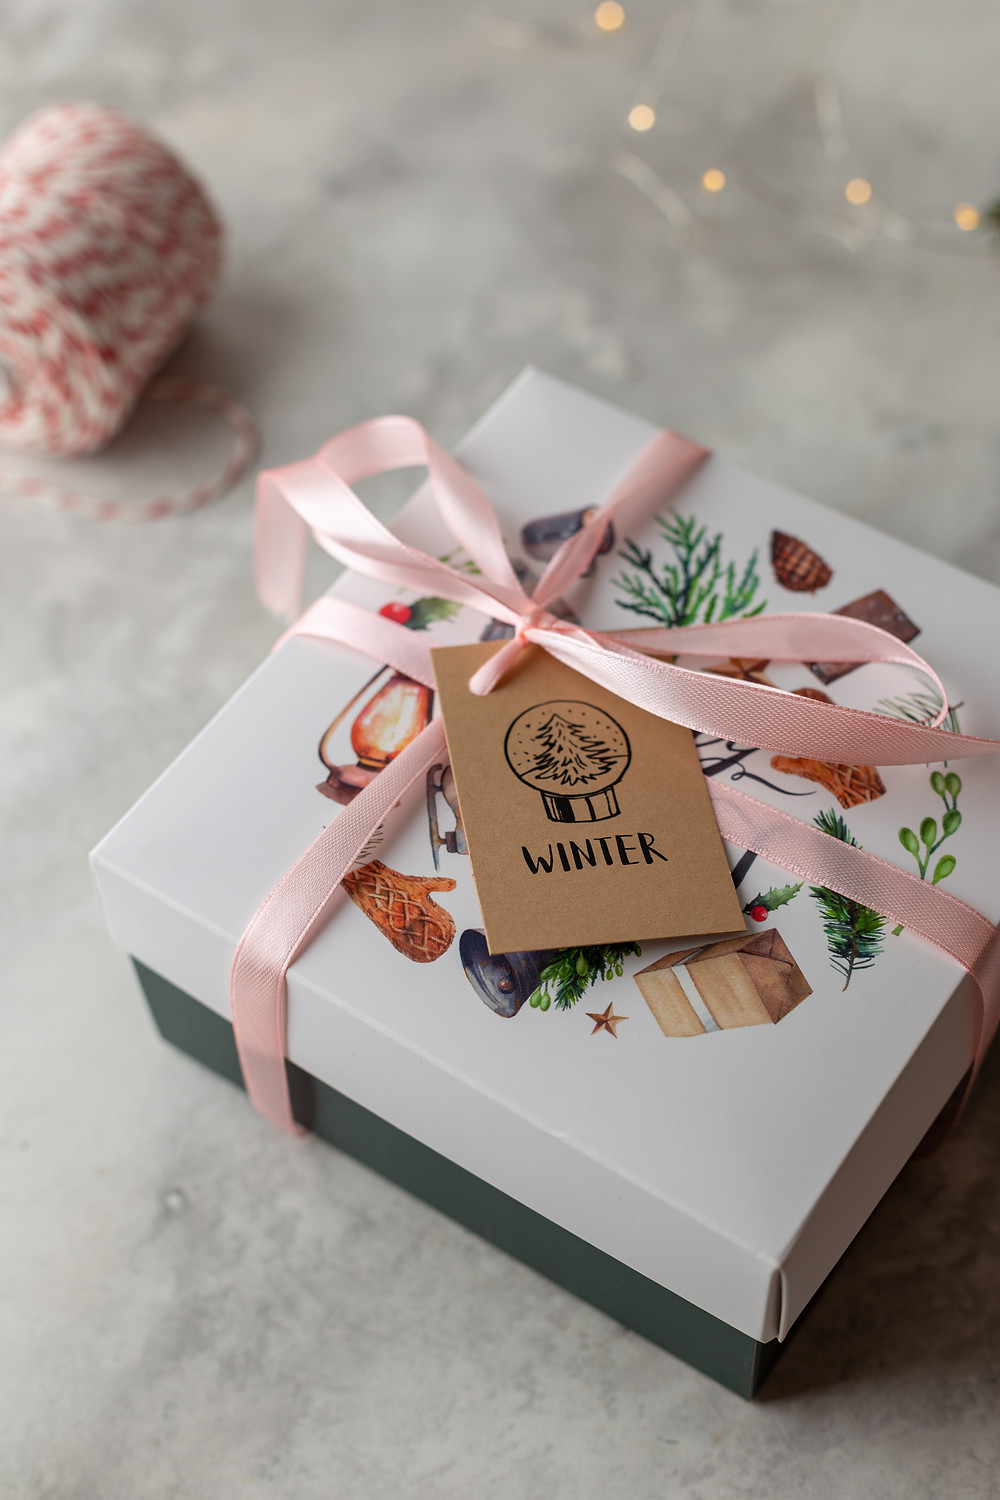 Box wrapped up with pink ribbon and a label on that says Winter